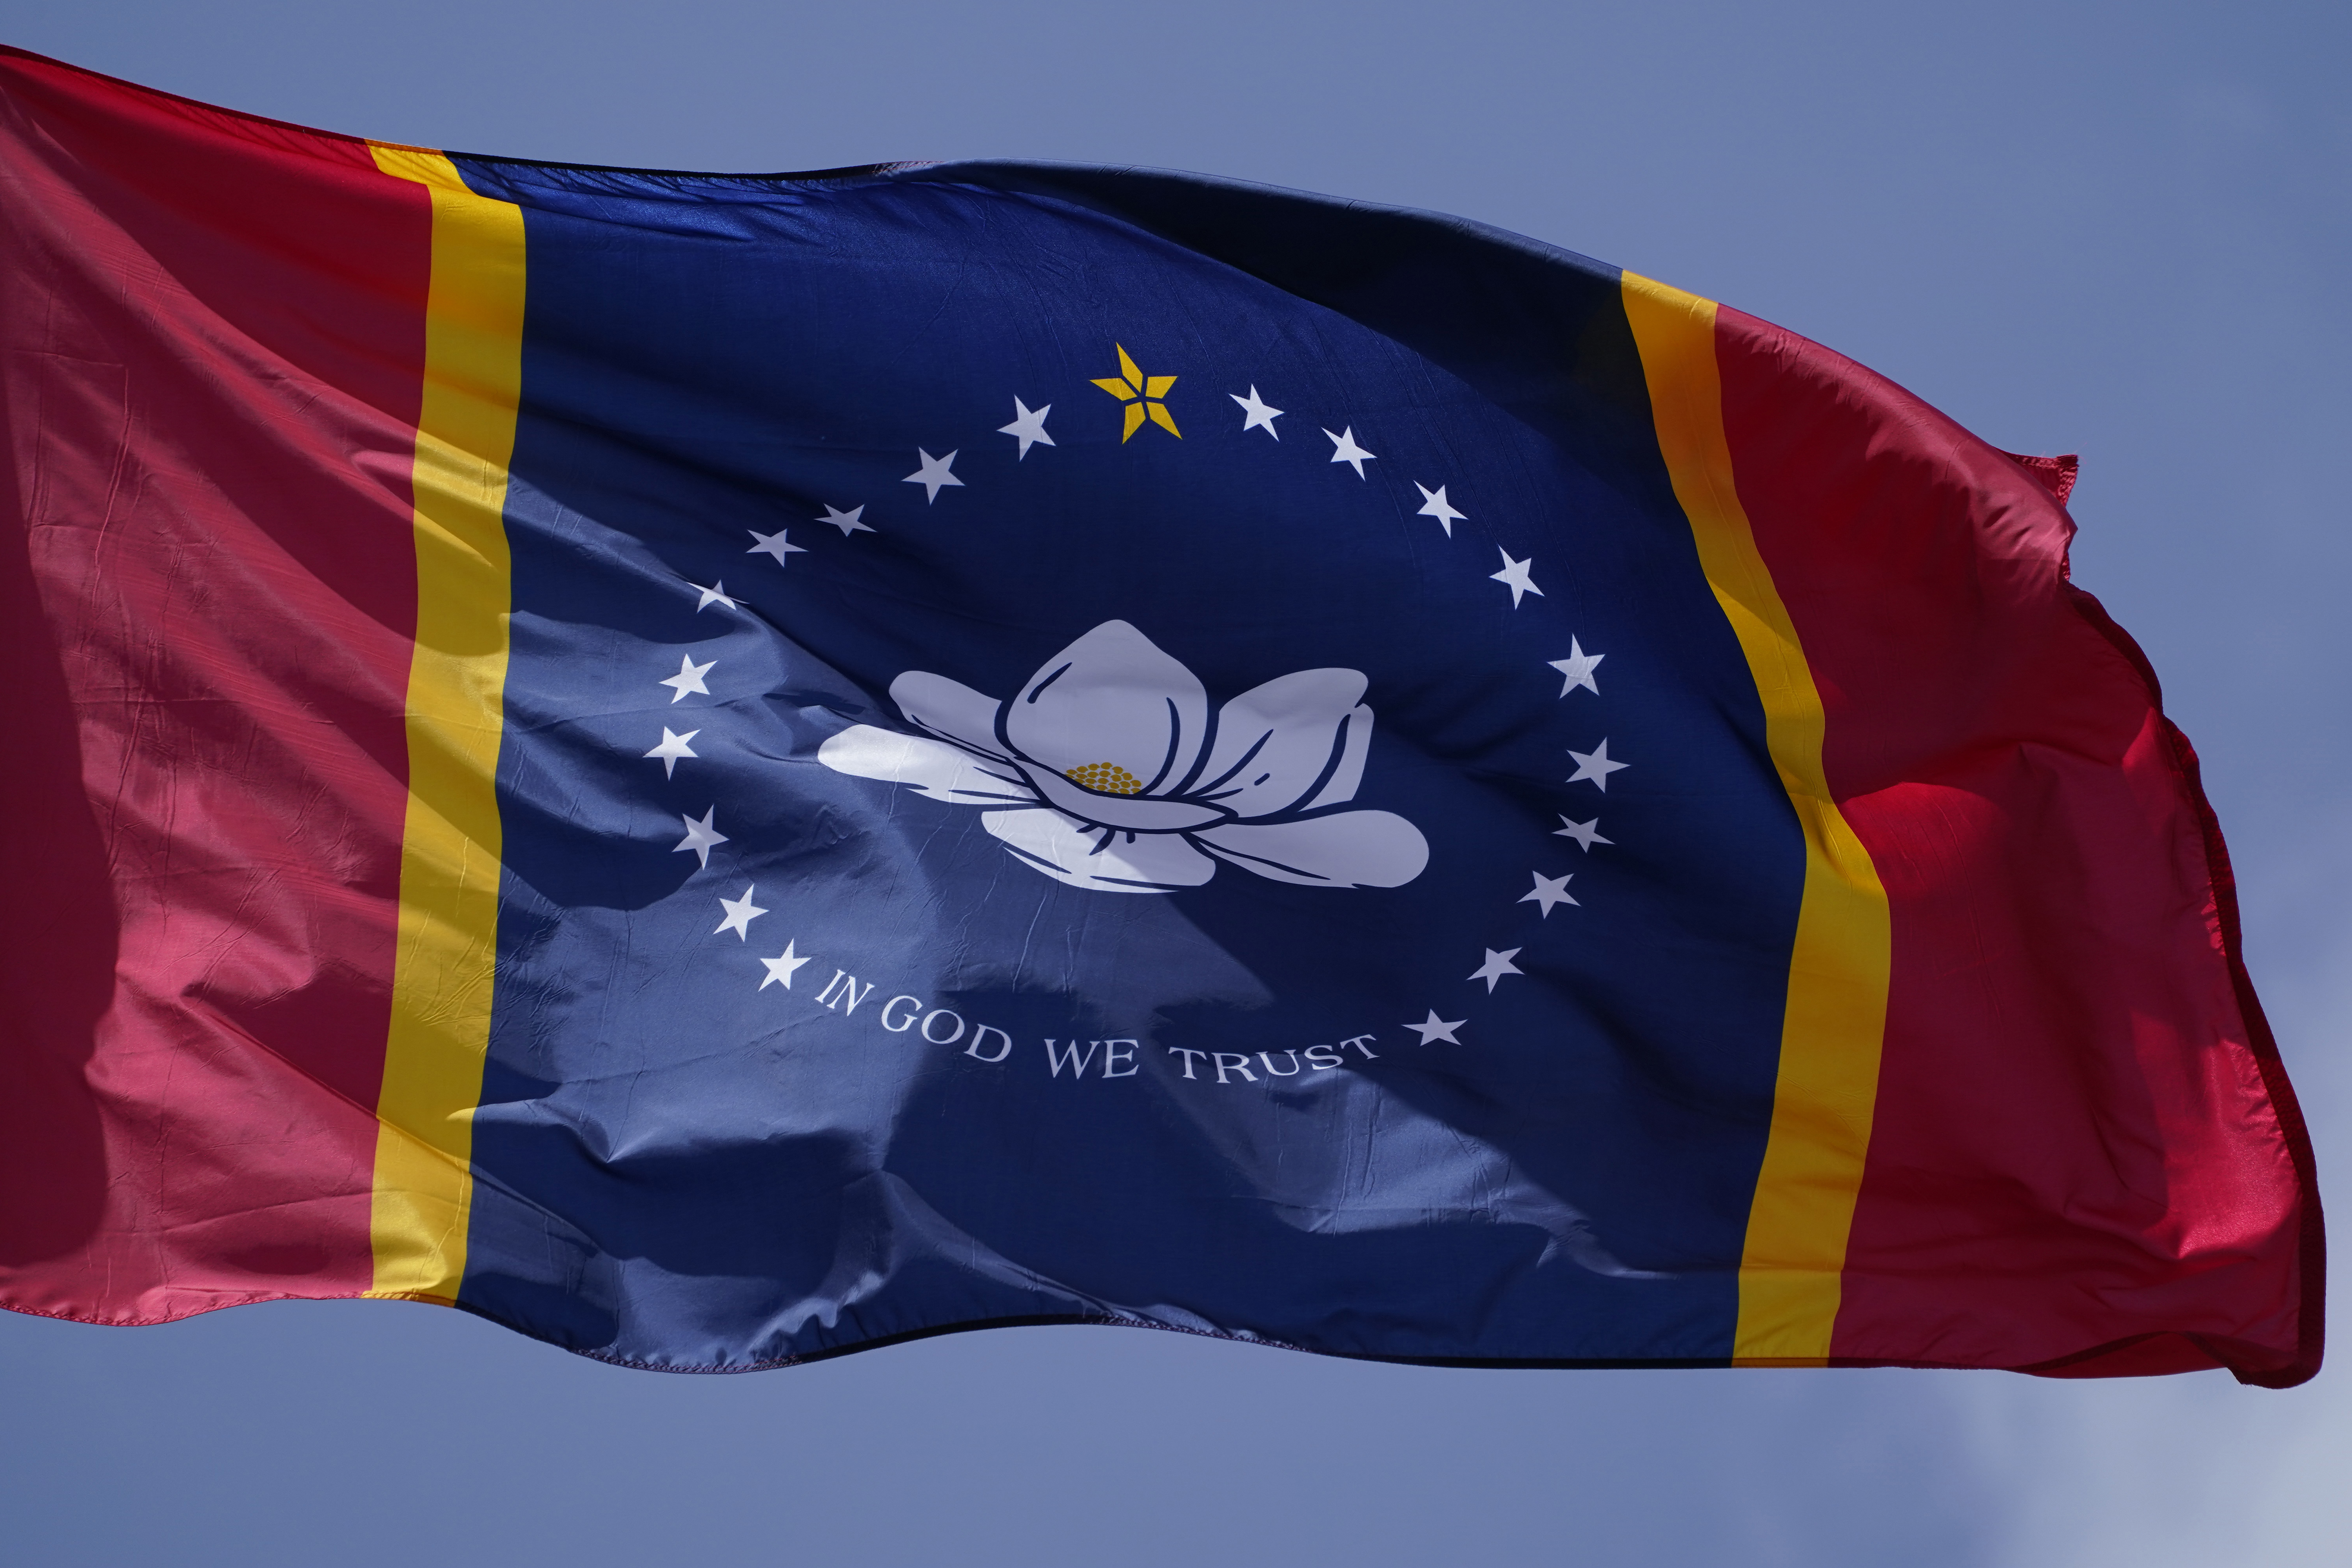 Mississippis new magnolia flag starting to fly after vote